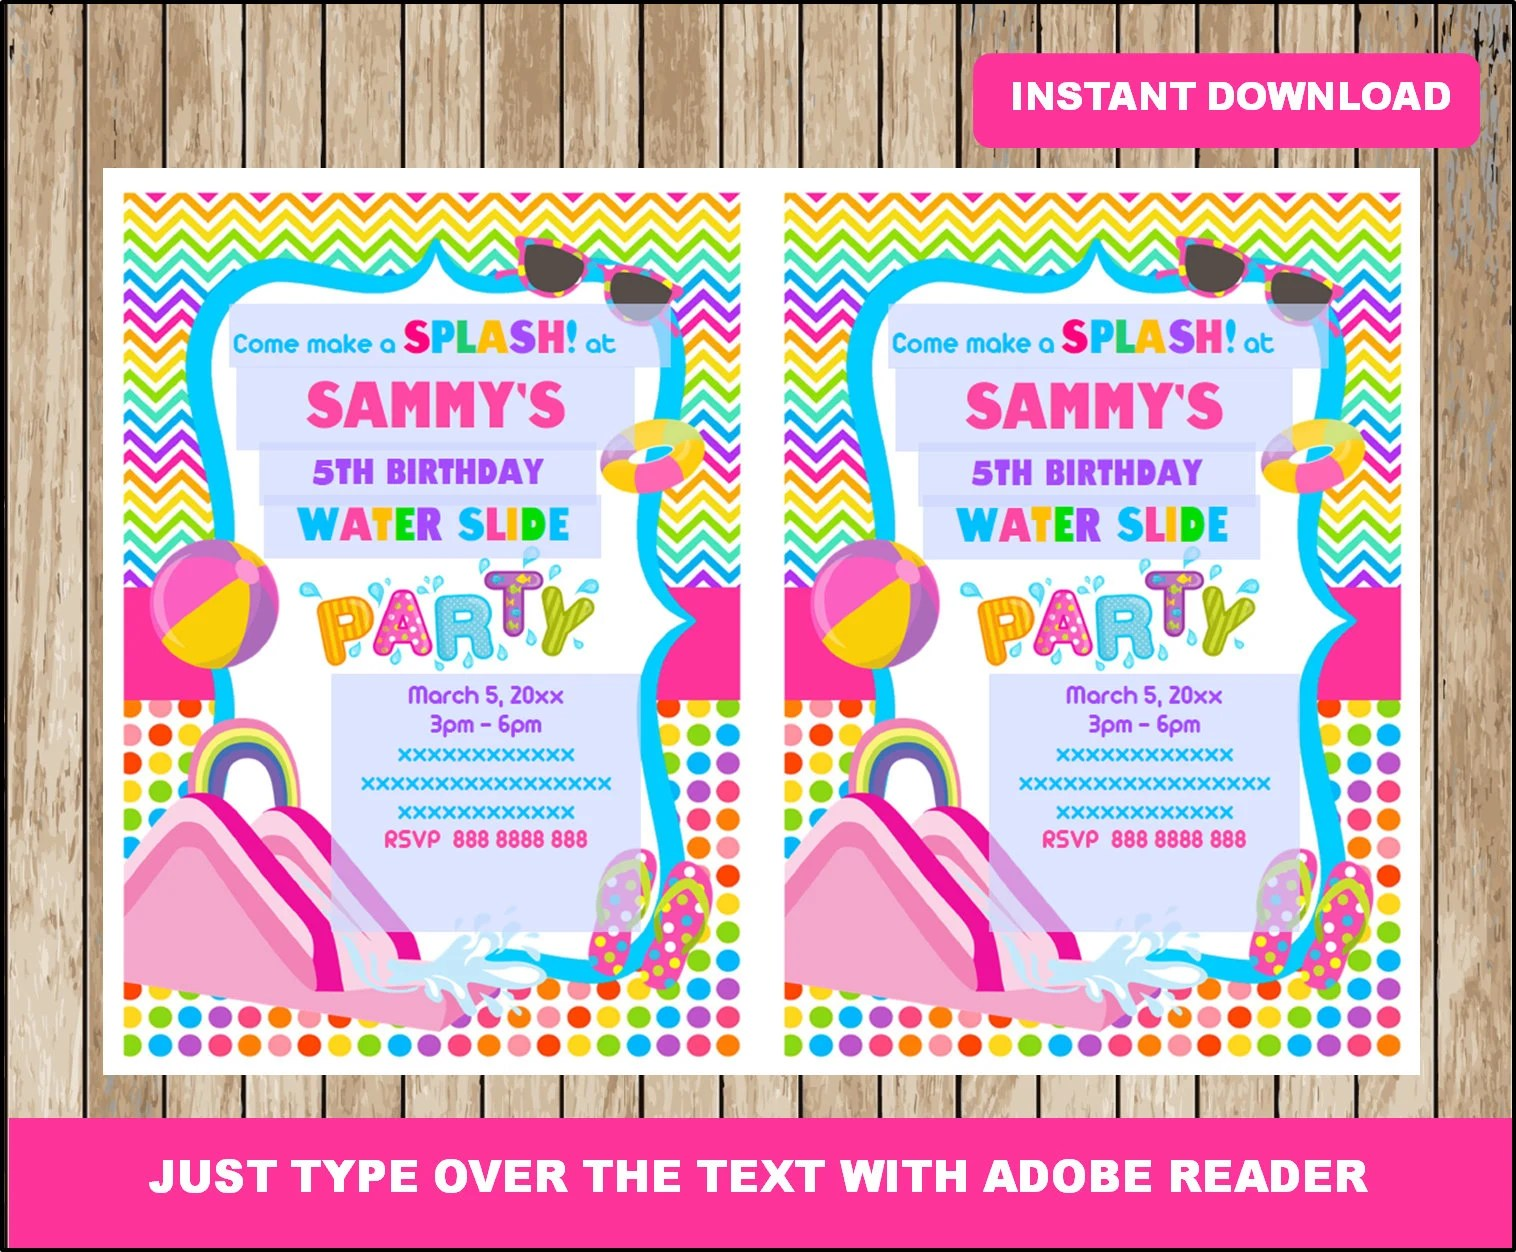 water slide party invitation waterslide birthday invitation waterslide party customizable template editable pdf file you fill and print